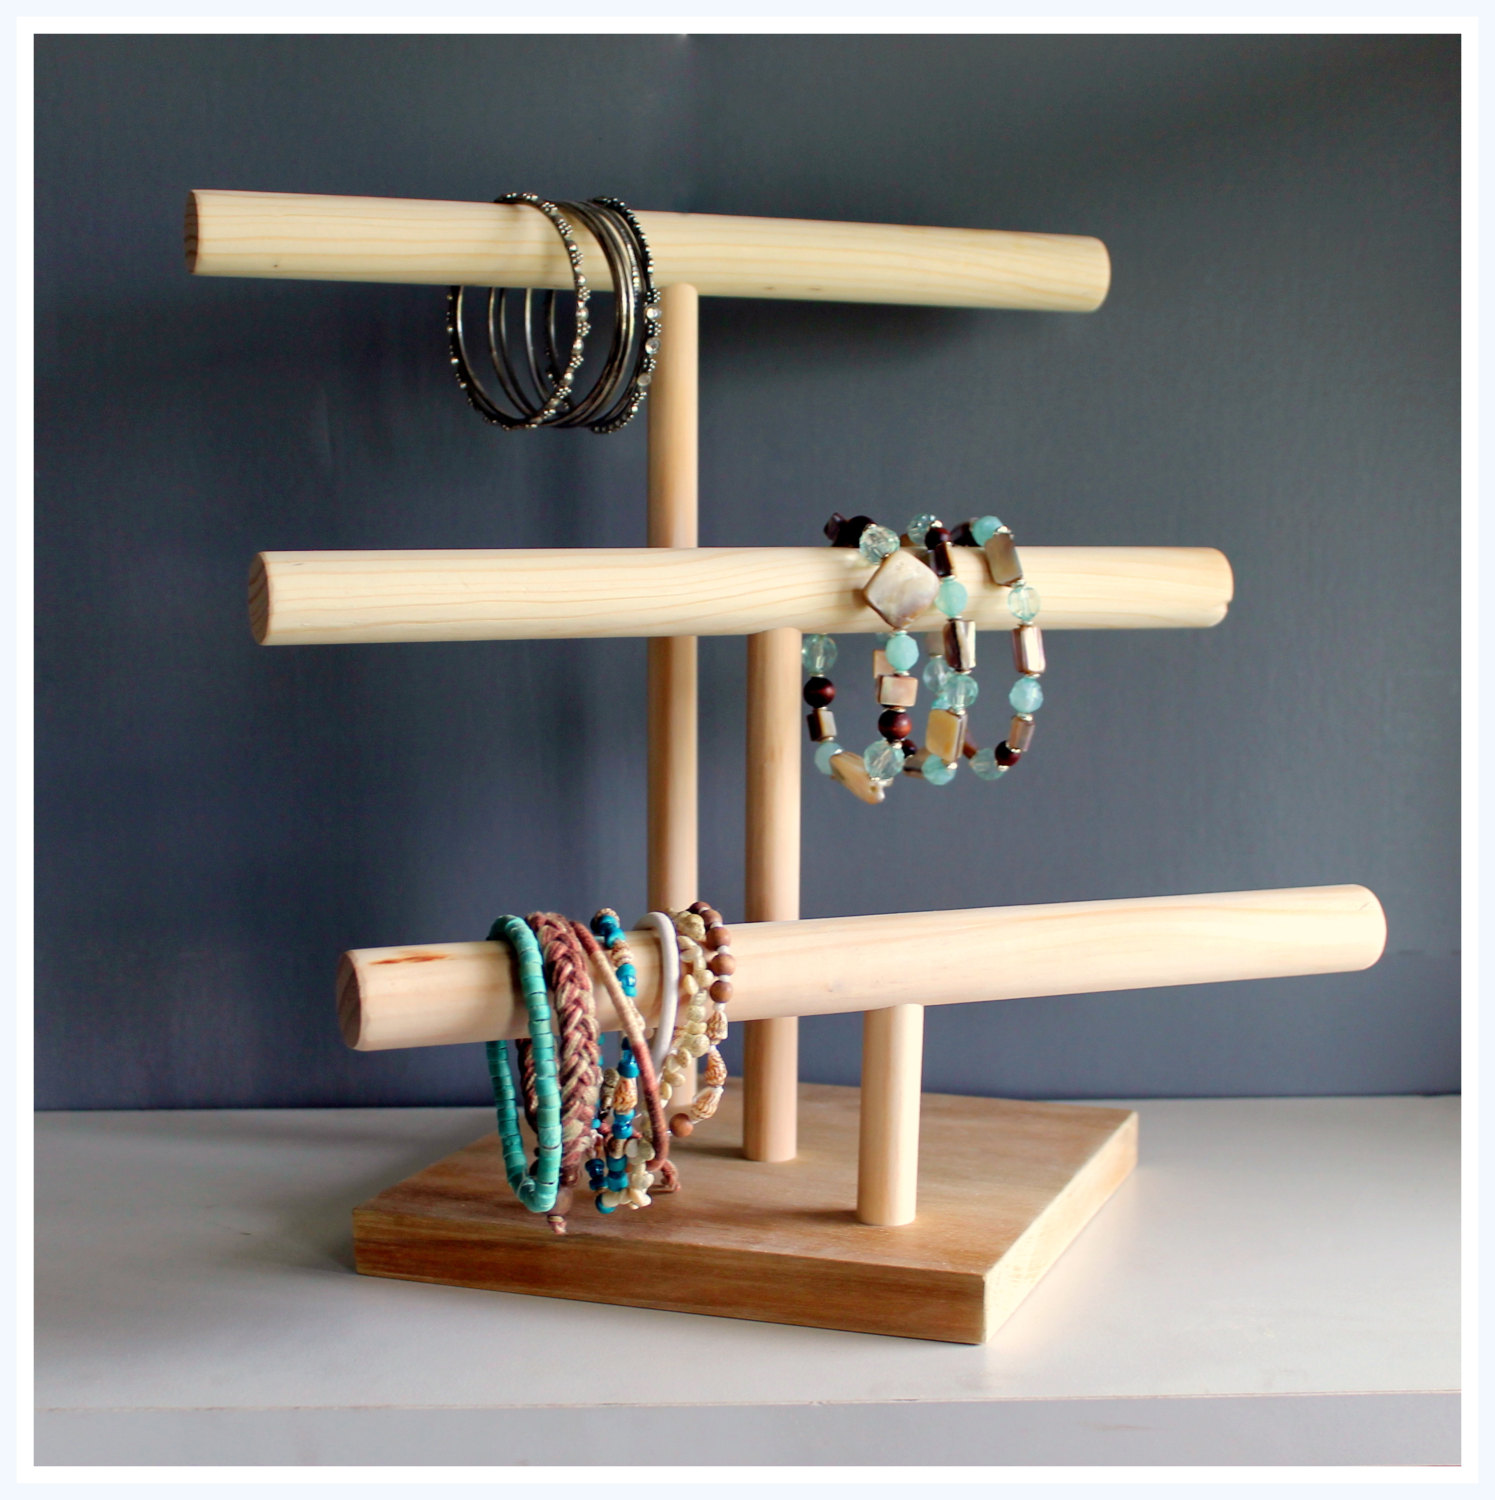 Diy 3 Tier Jewelry Stand: Jeri's Organizing & Decluttering News: Cool Jewelry Stands